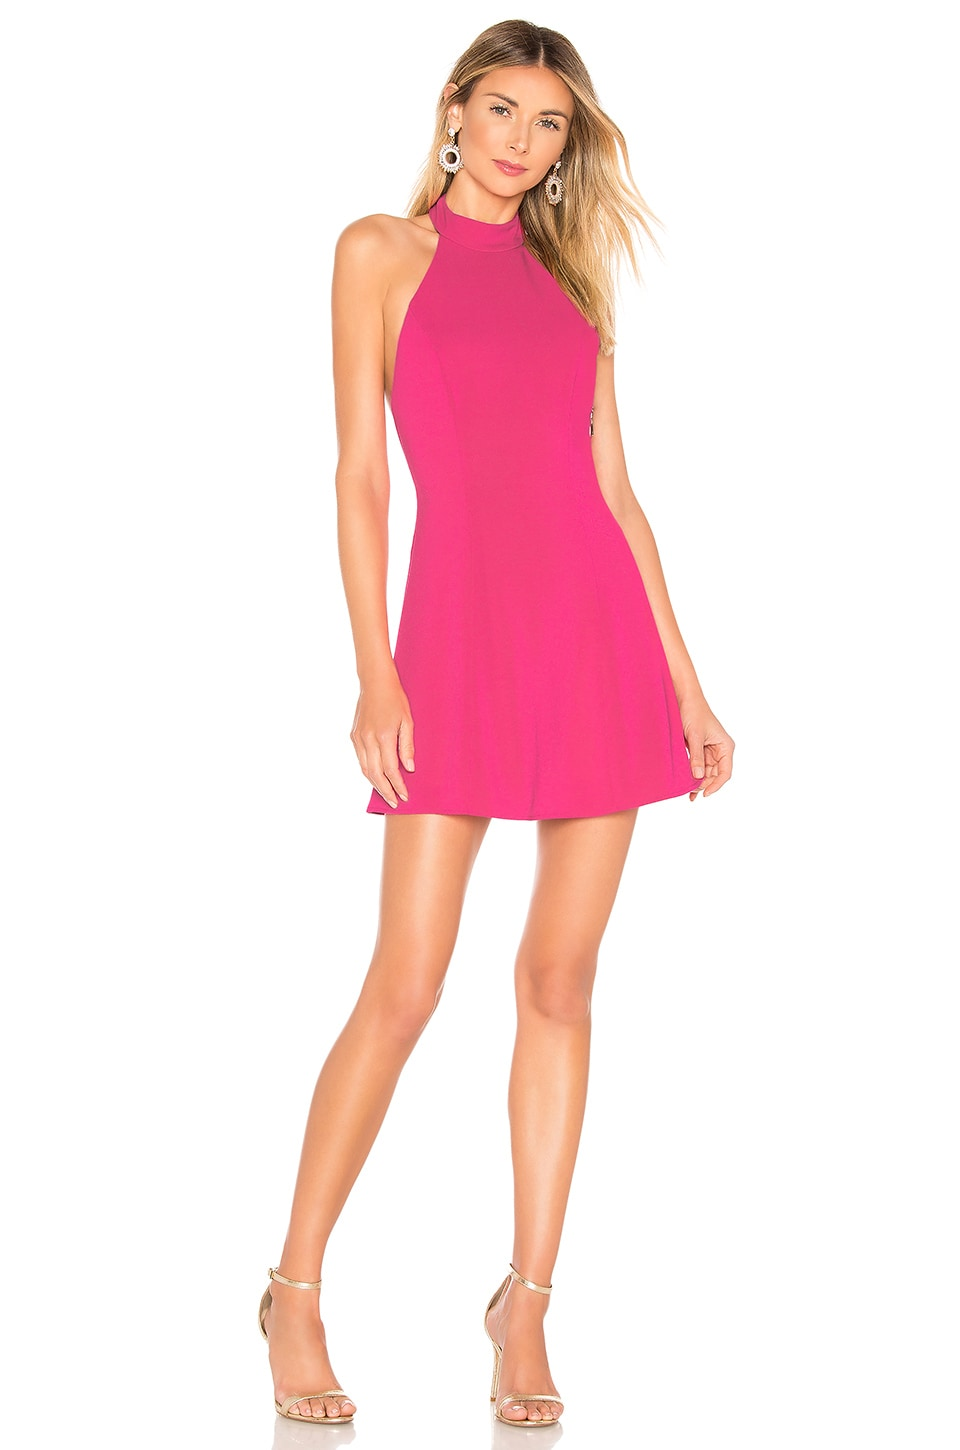 NBD x Naven Ivy Dress in Bright Pink